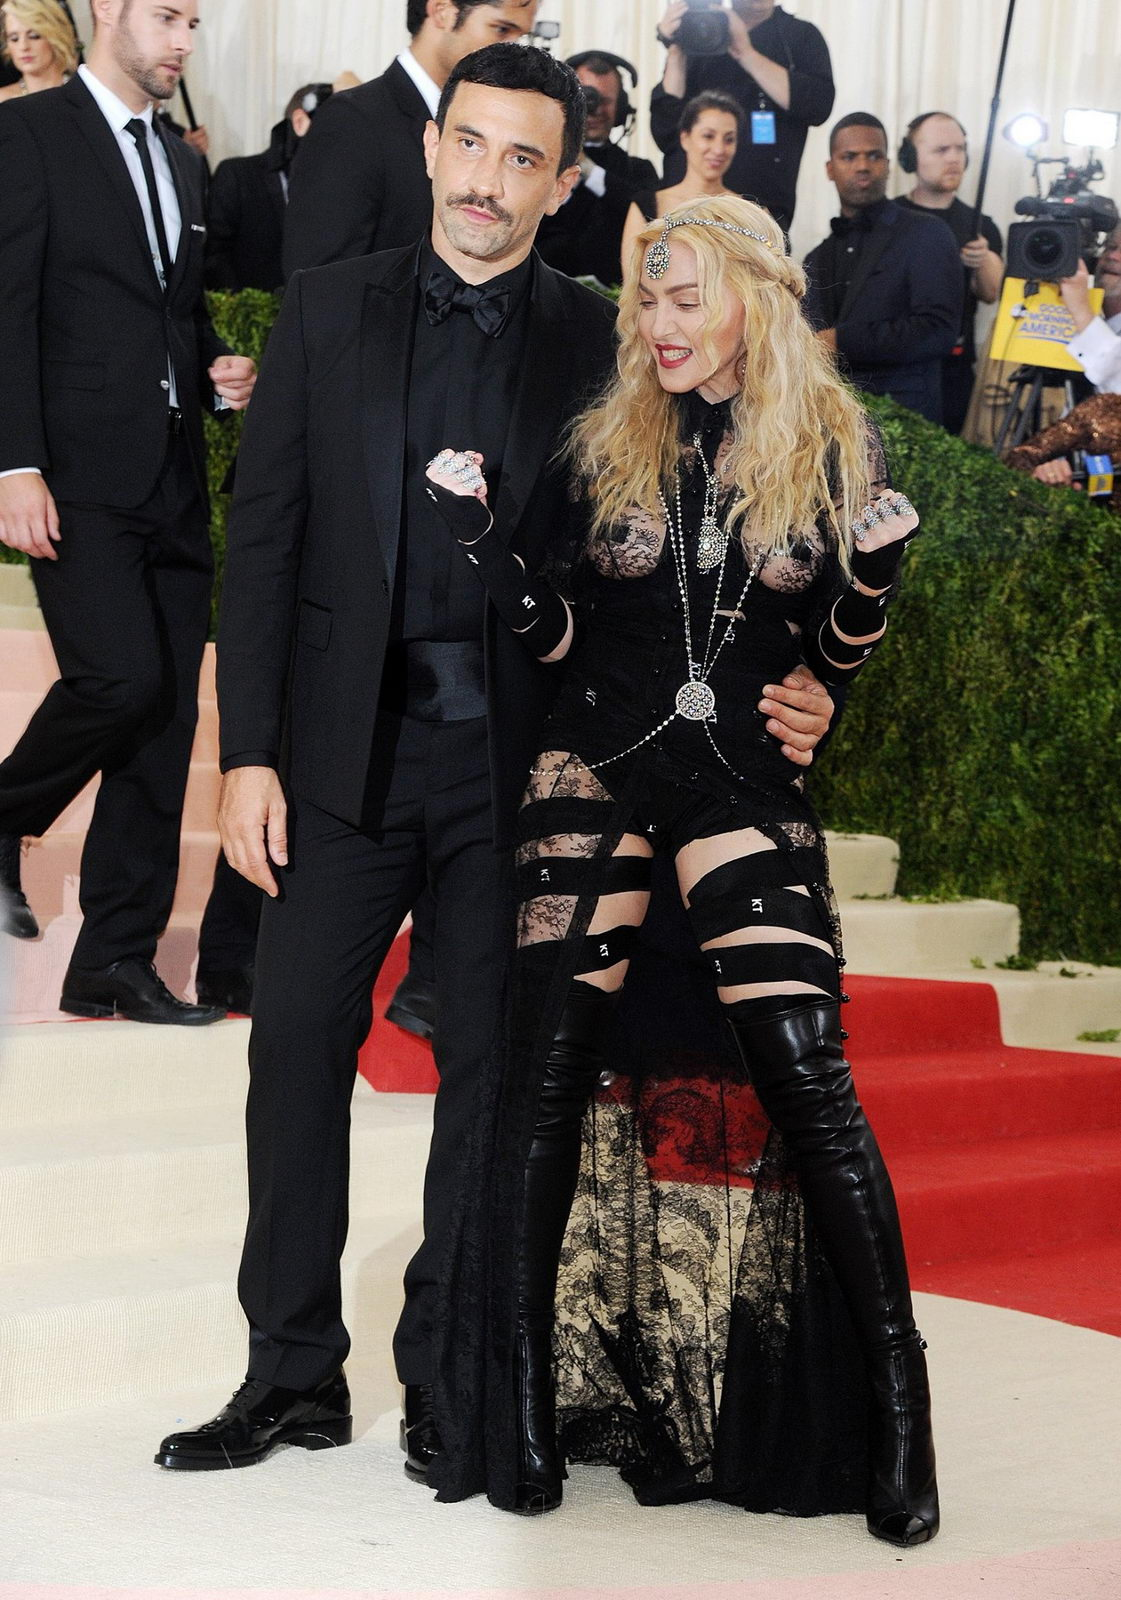 Madonna at the MET Costume Institute Benefit Gala